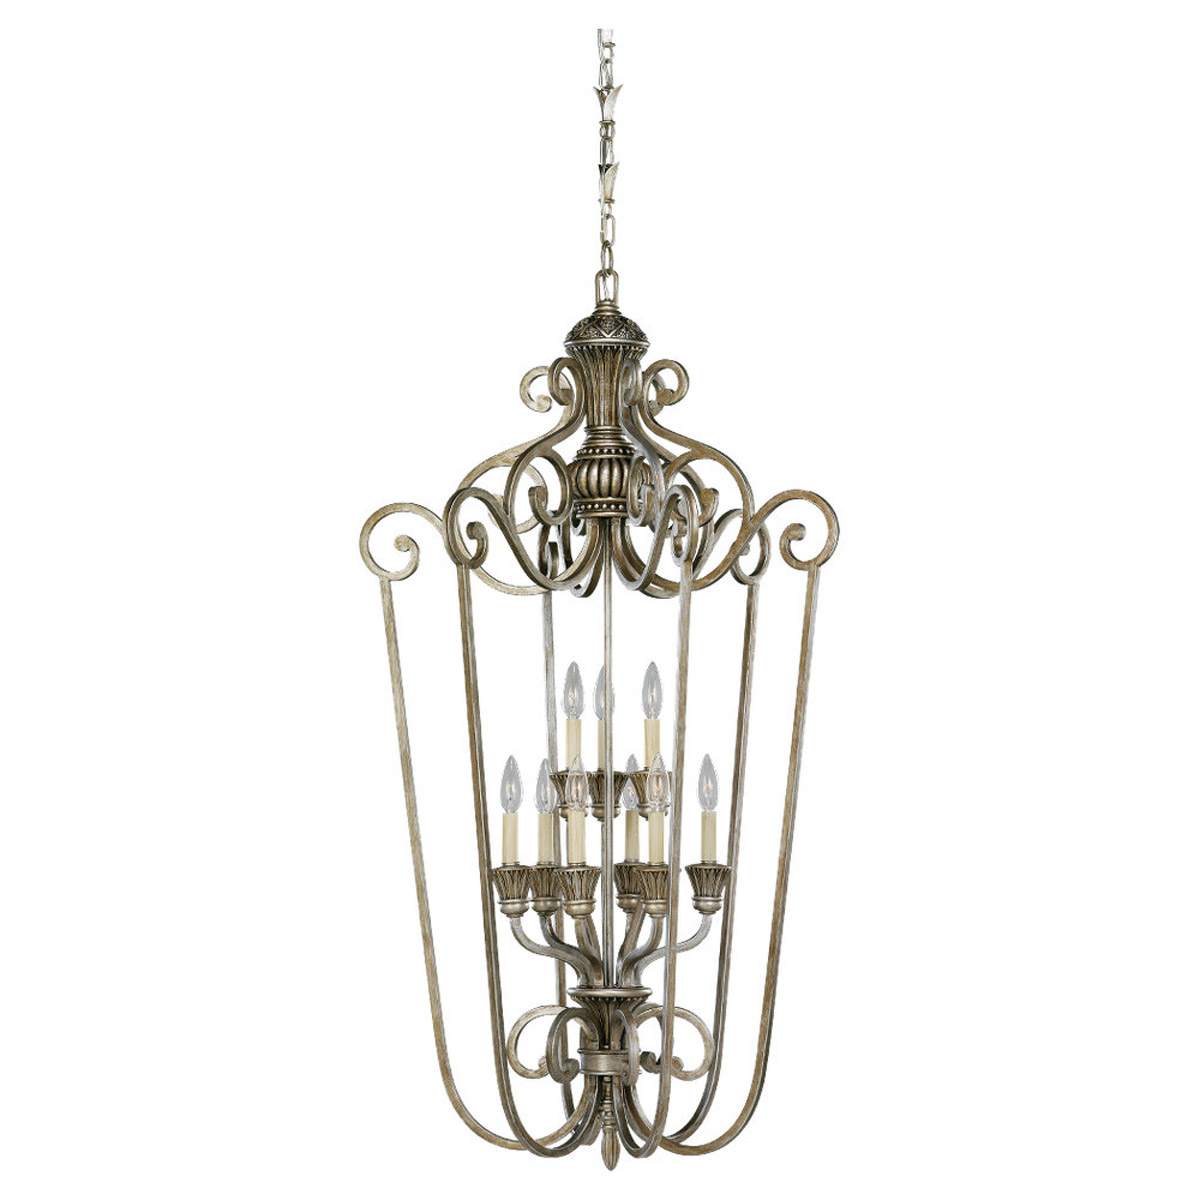 Sea Gull Lighting Highlands 9 Light Foyer Pendant in Palladium 51257-824 photo